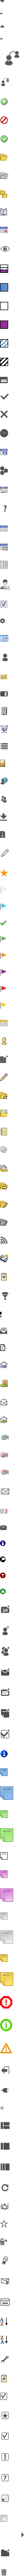 client/resources/images/icons-s1f64c7ae40.png